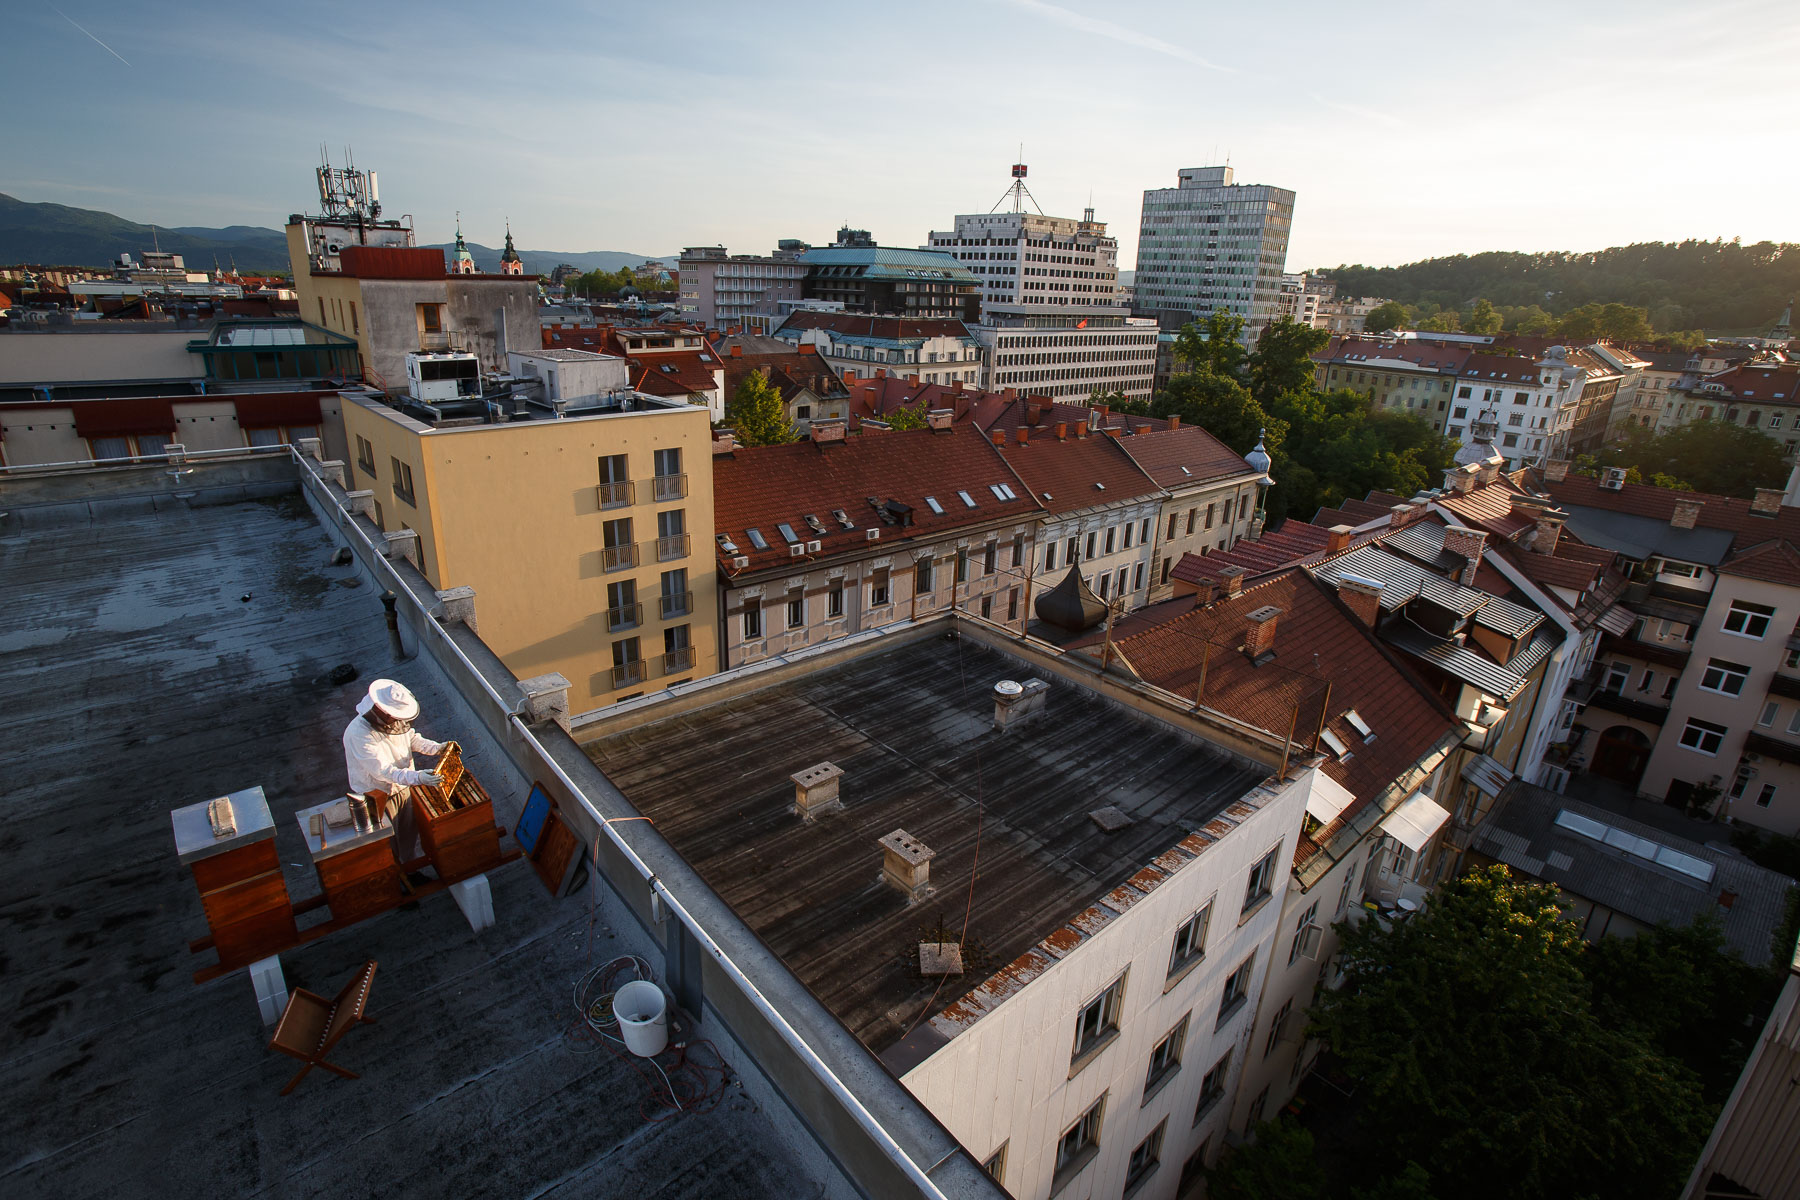 Trušnovec inspects the beehives on the roof of Radio Slovenia in late afternoon.